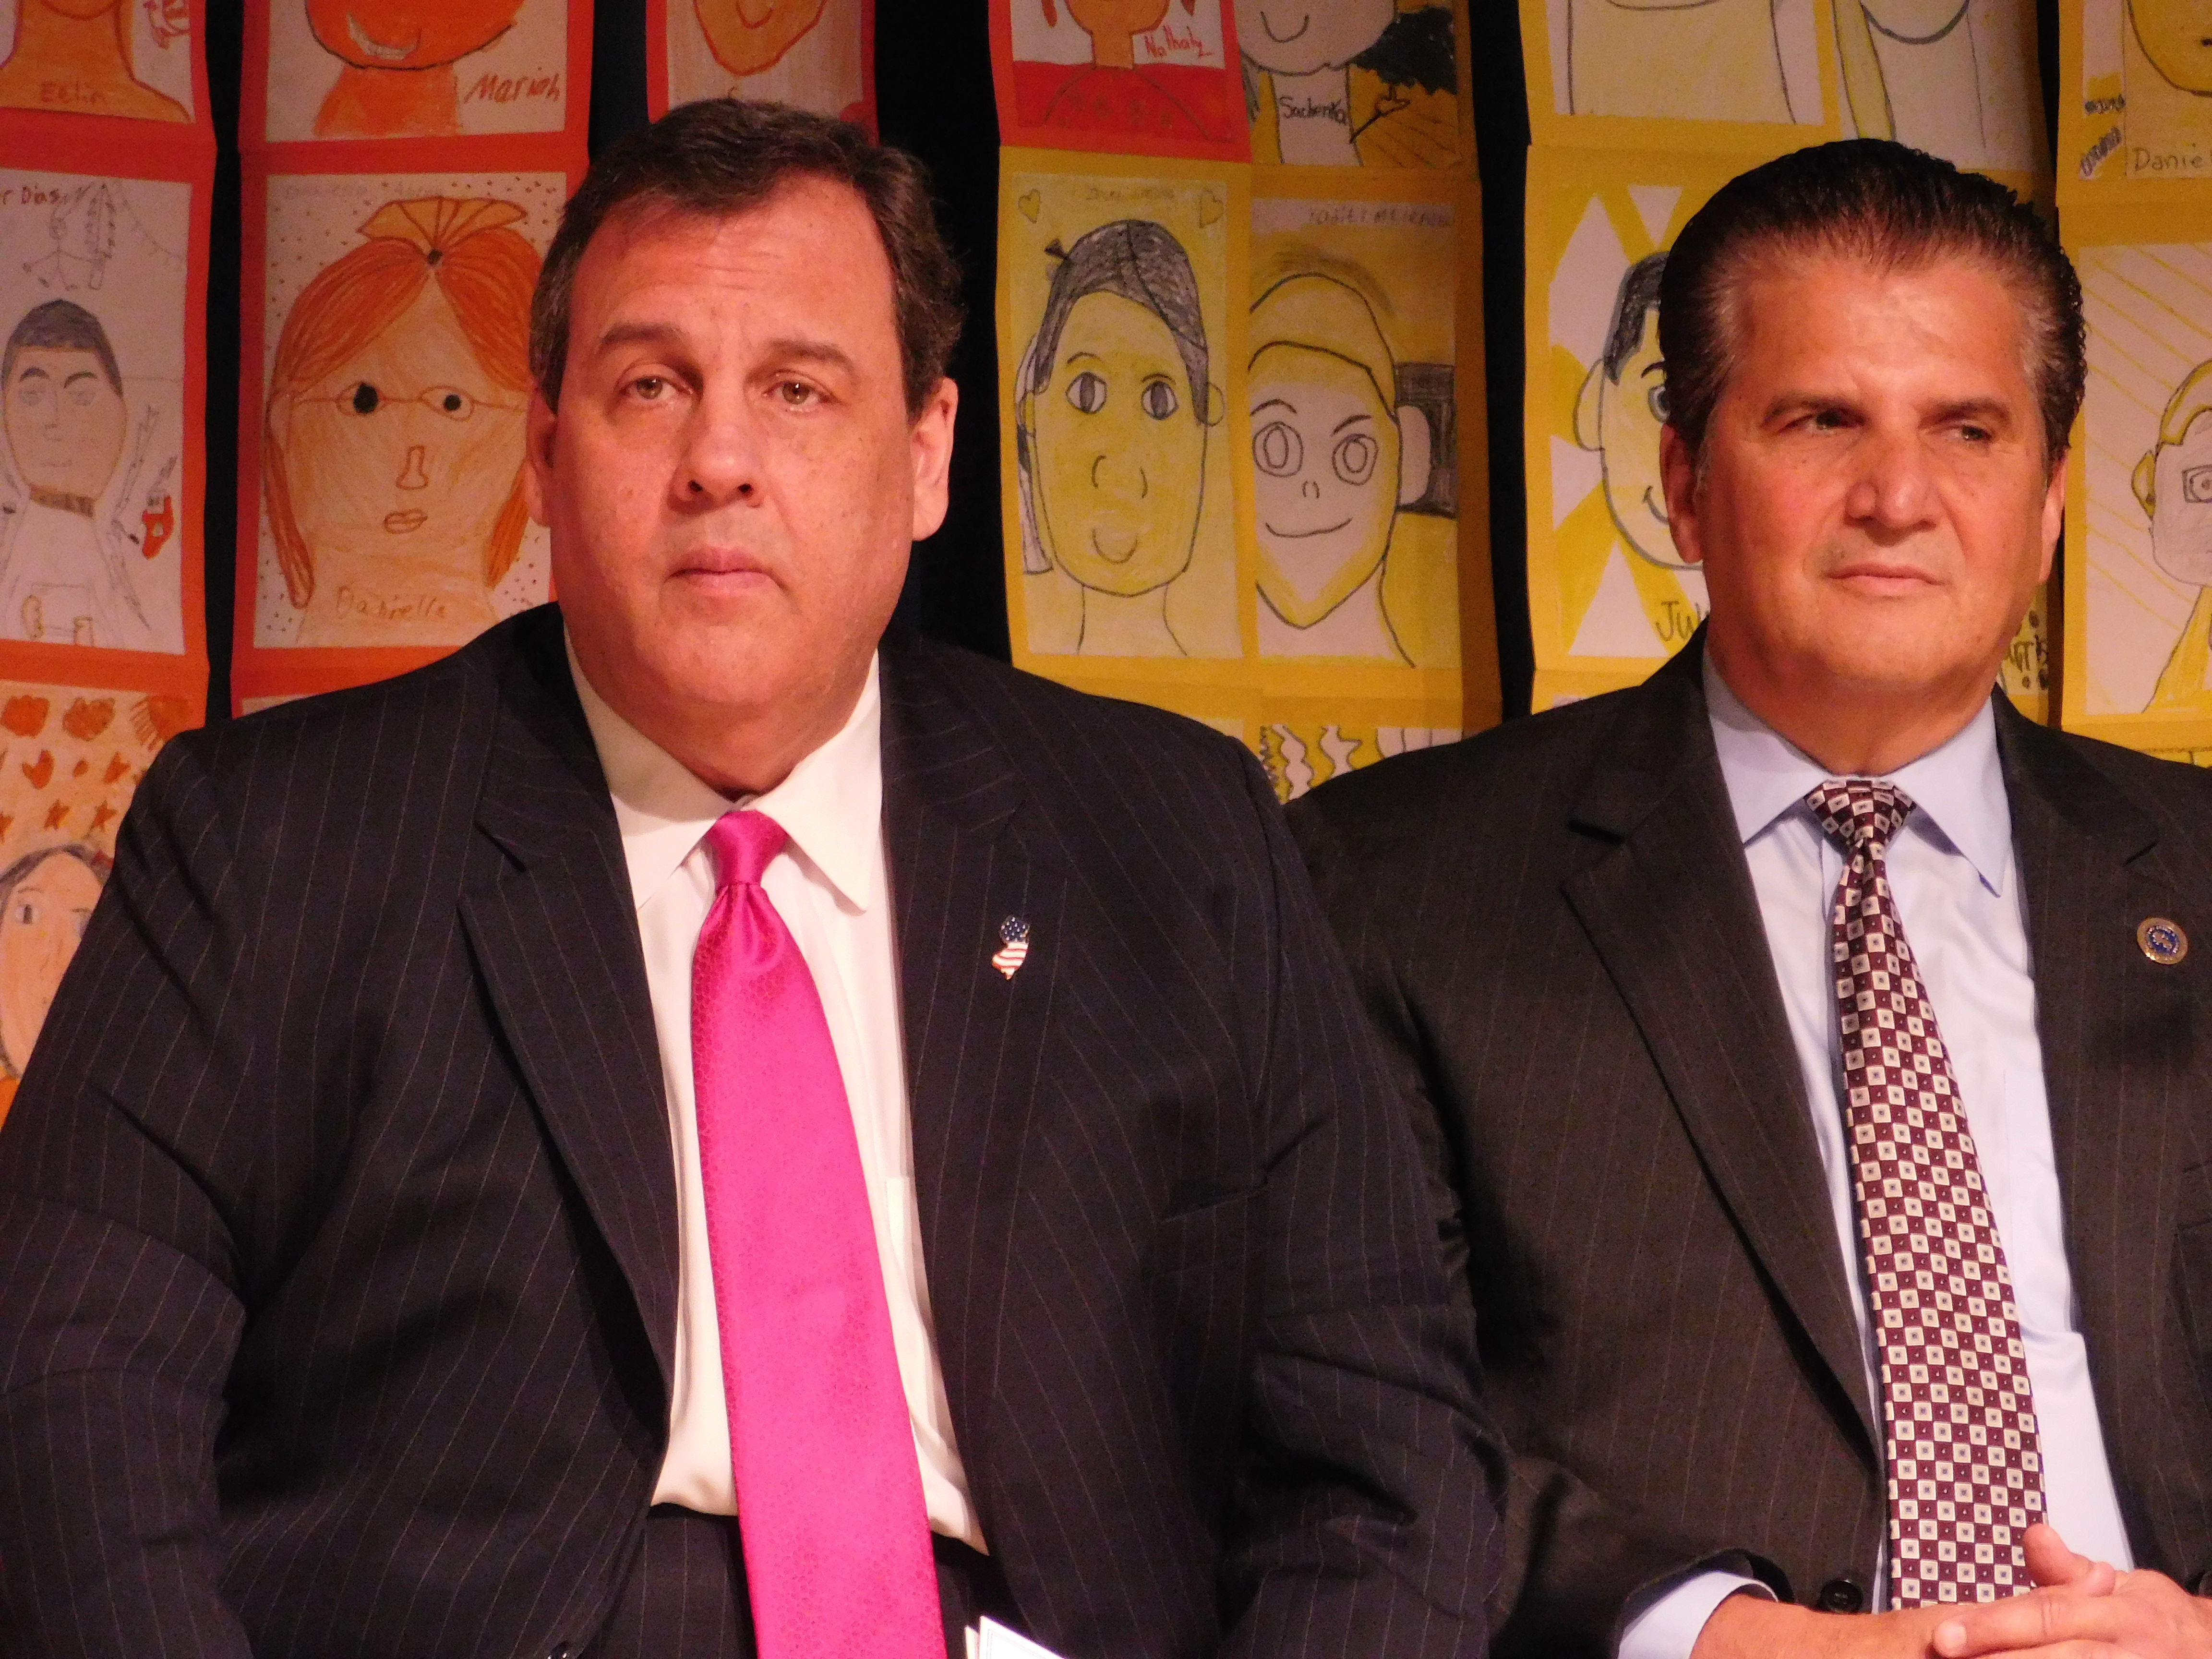 Governor Christie and Joe D at the Elliott Street School.